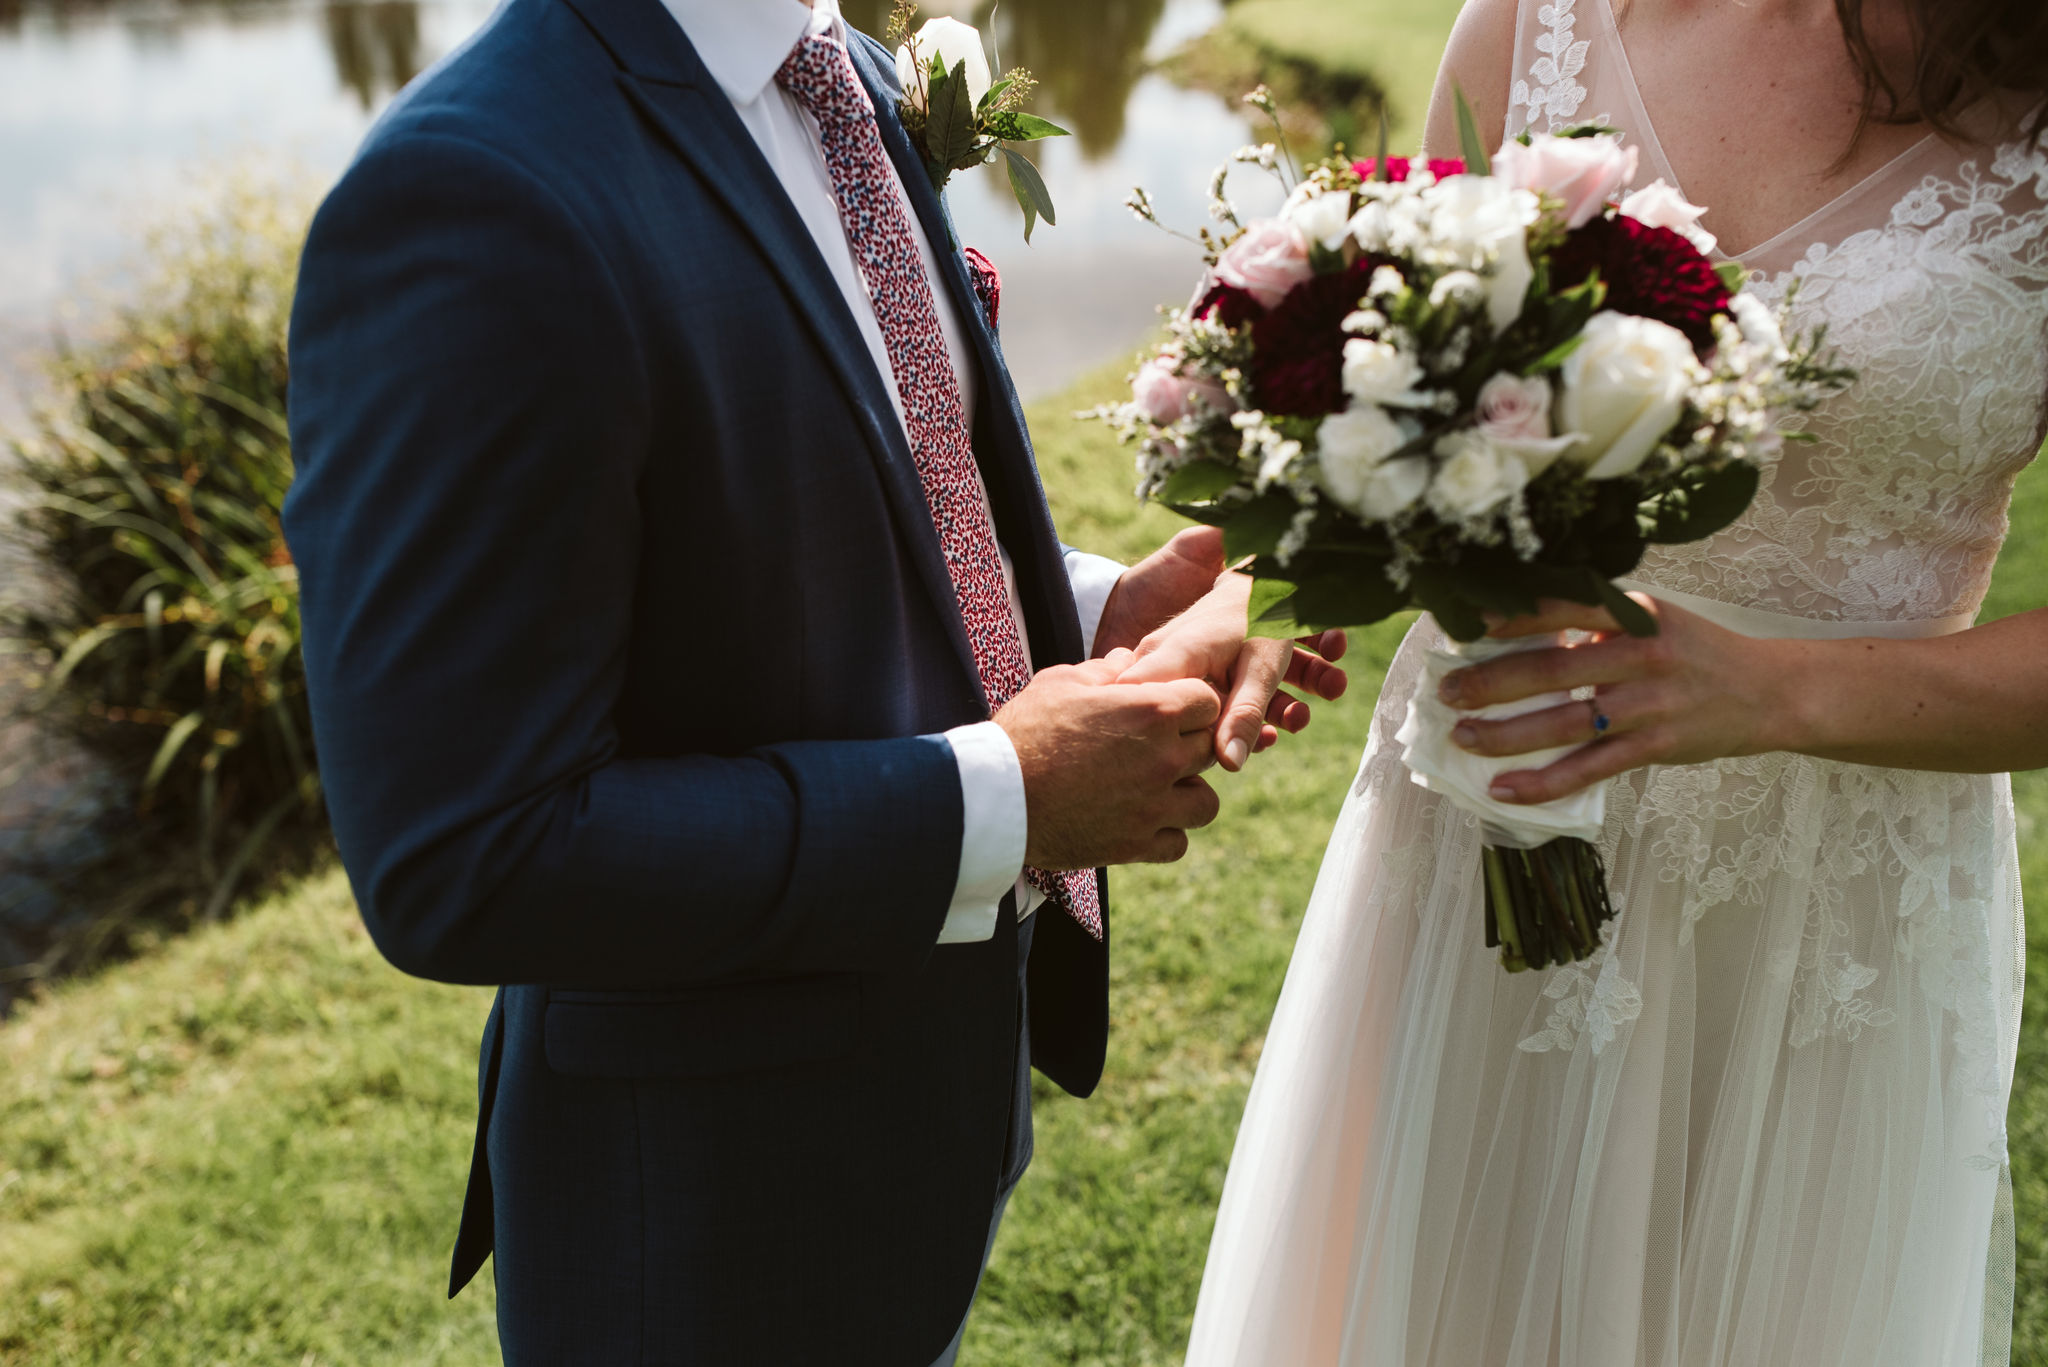 Phoenix Maryland, Baltimore Wedding Photographer, Eagle's Nest Country Club, Classic, Romantic, Spring, Bride and Groom Holidng Hands after First Look, Dundalk Florist, Knotty Tie, Generation Tux